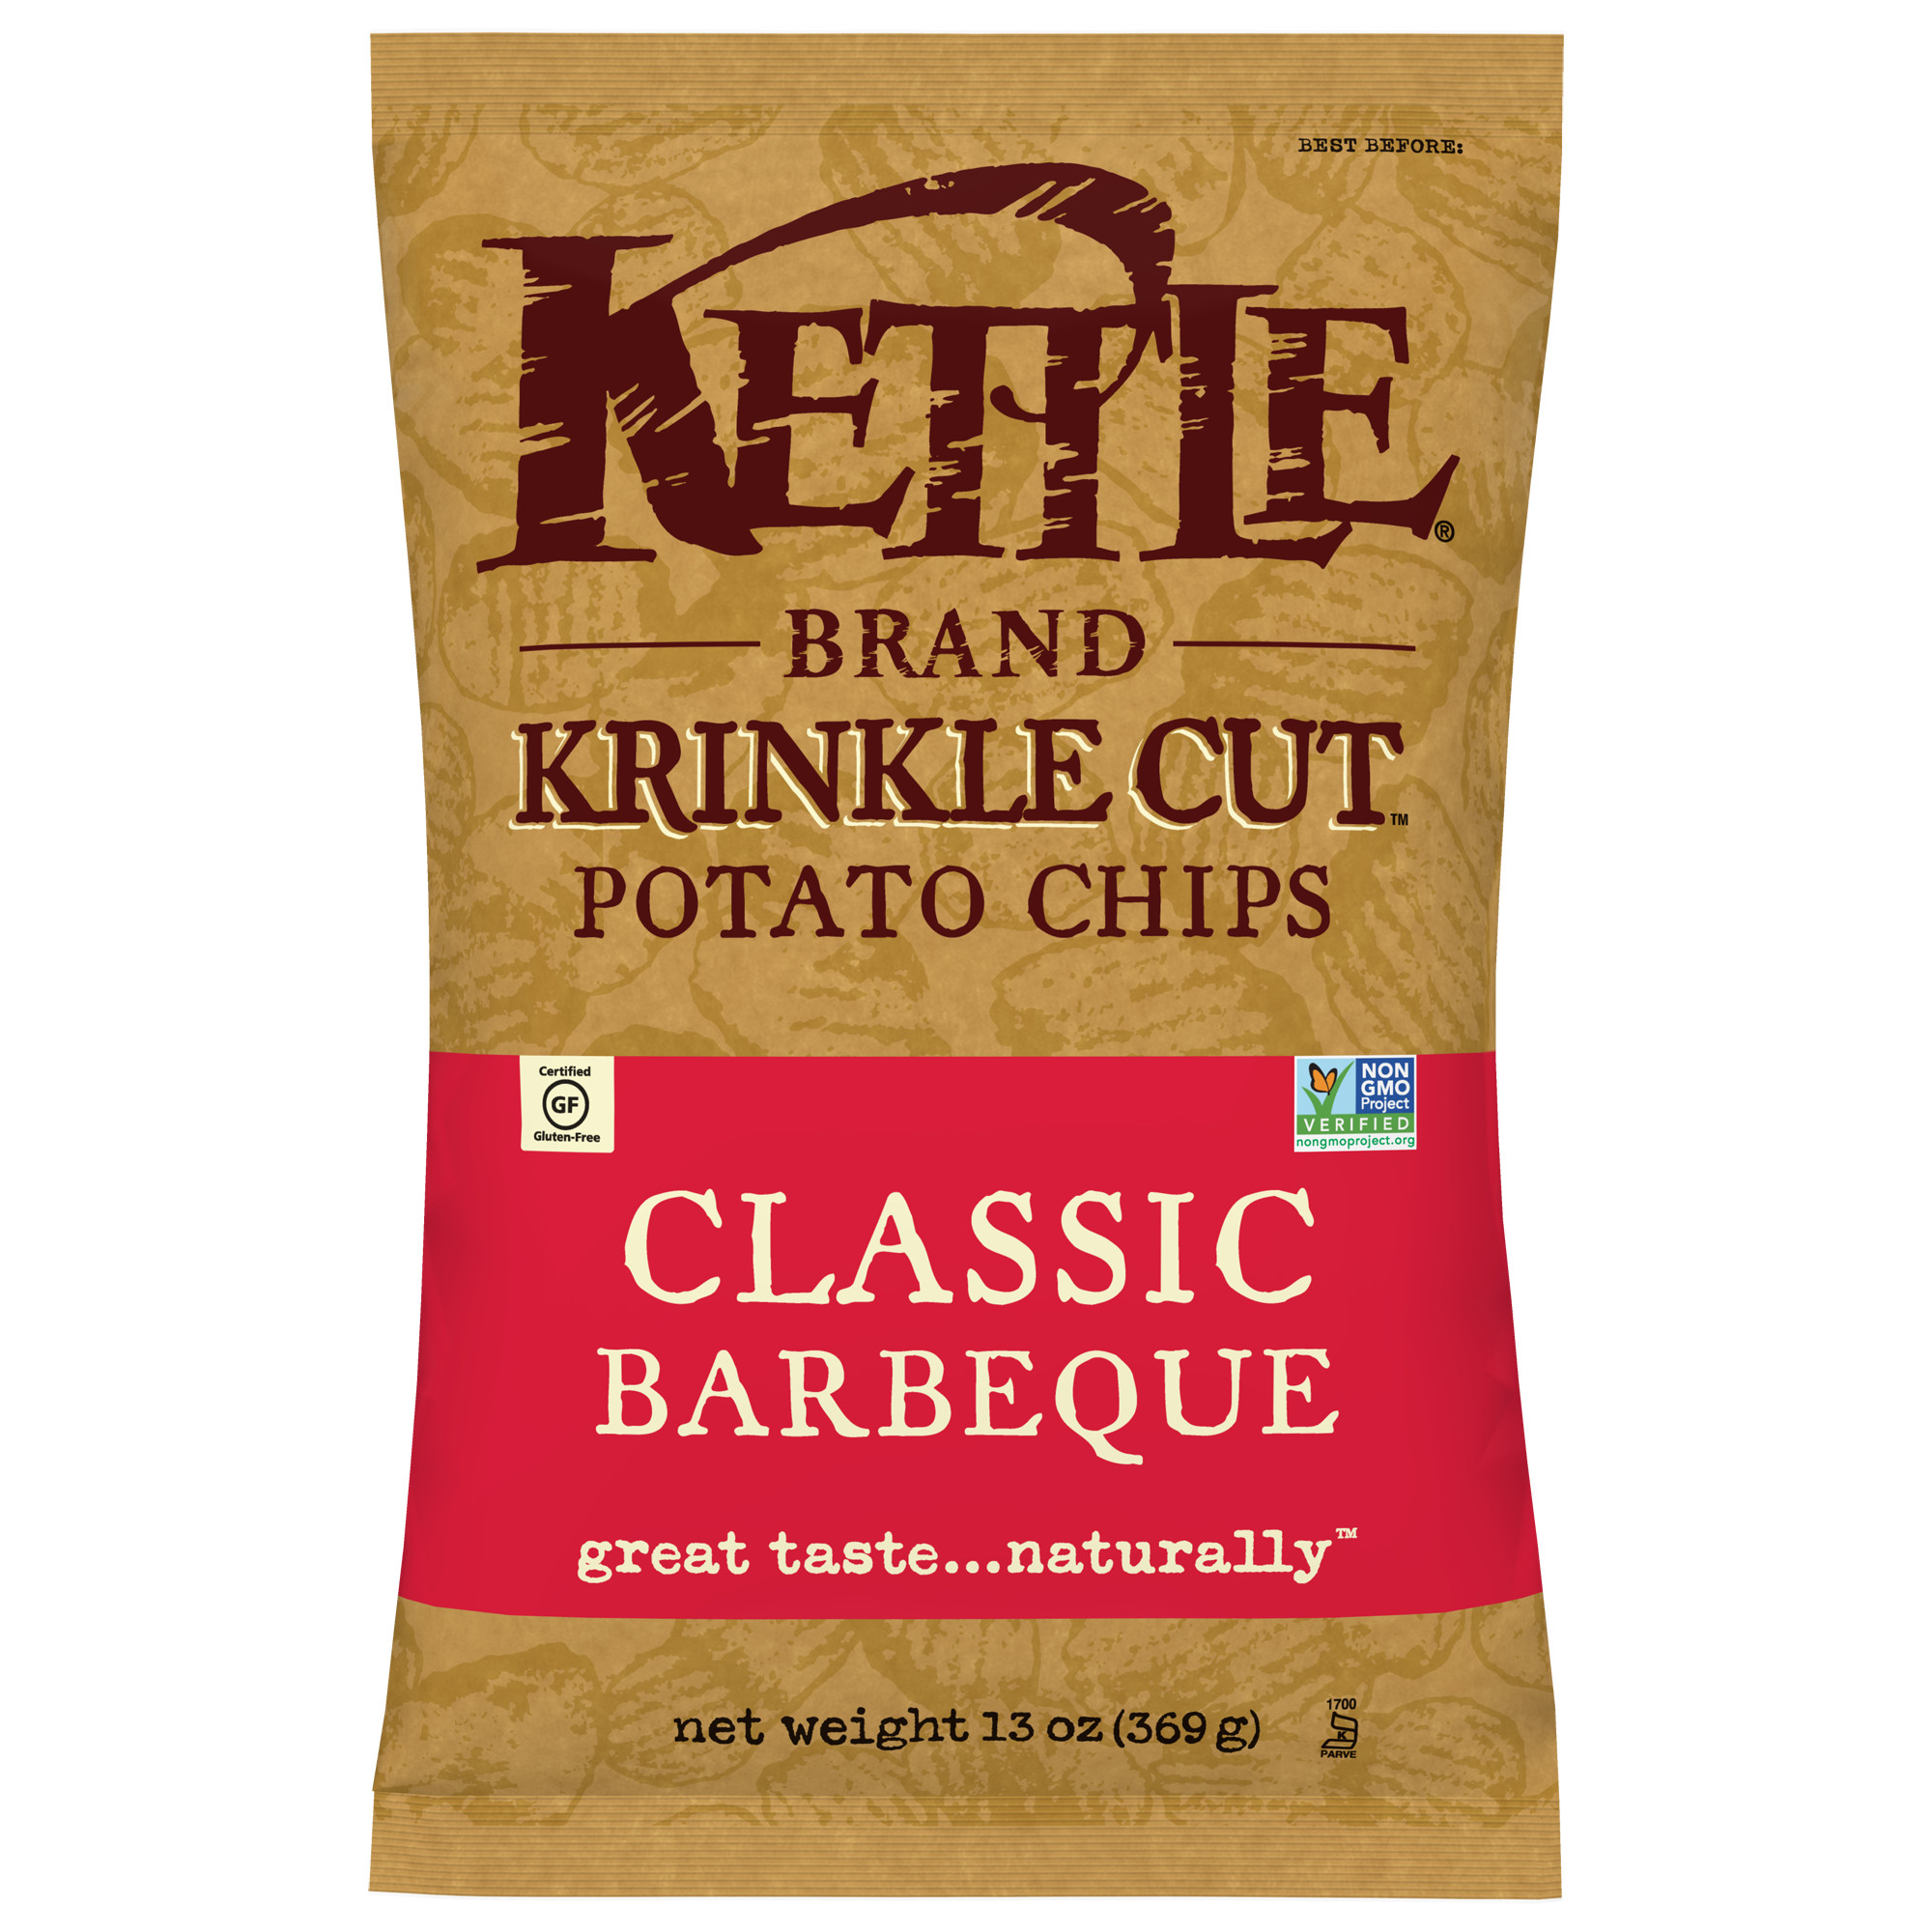 Kettle Brand Krinkle Cut Potato Chips, Classic Barbeque, 13 Oz